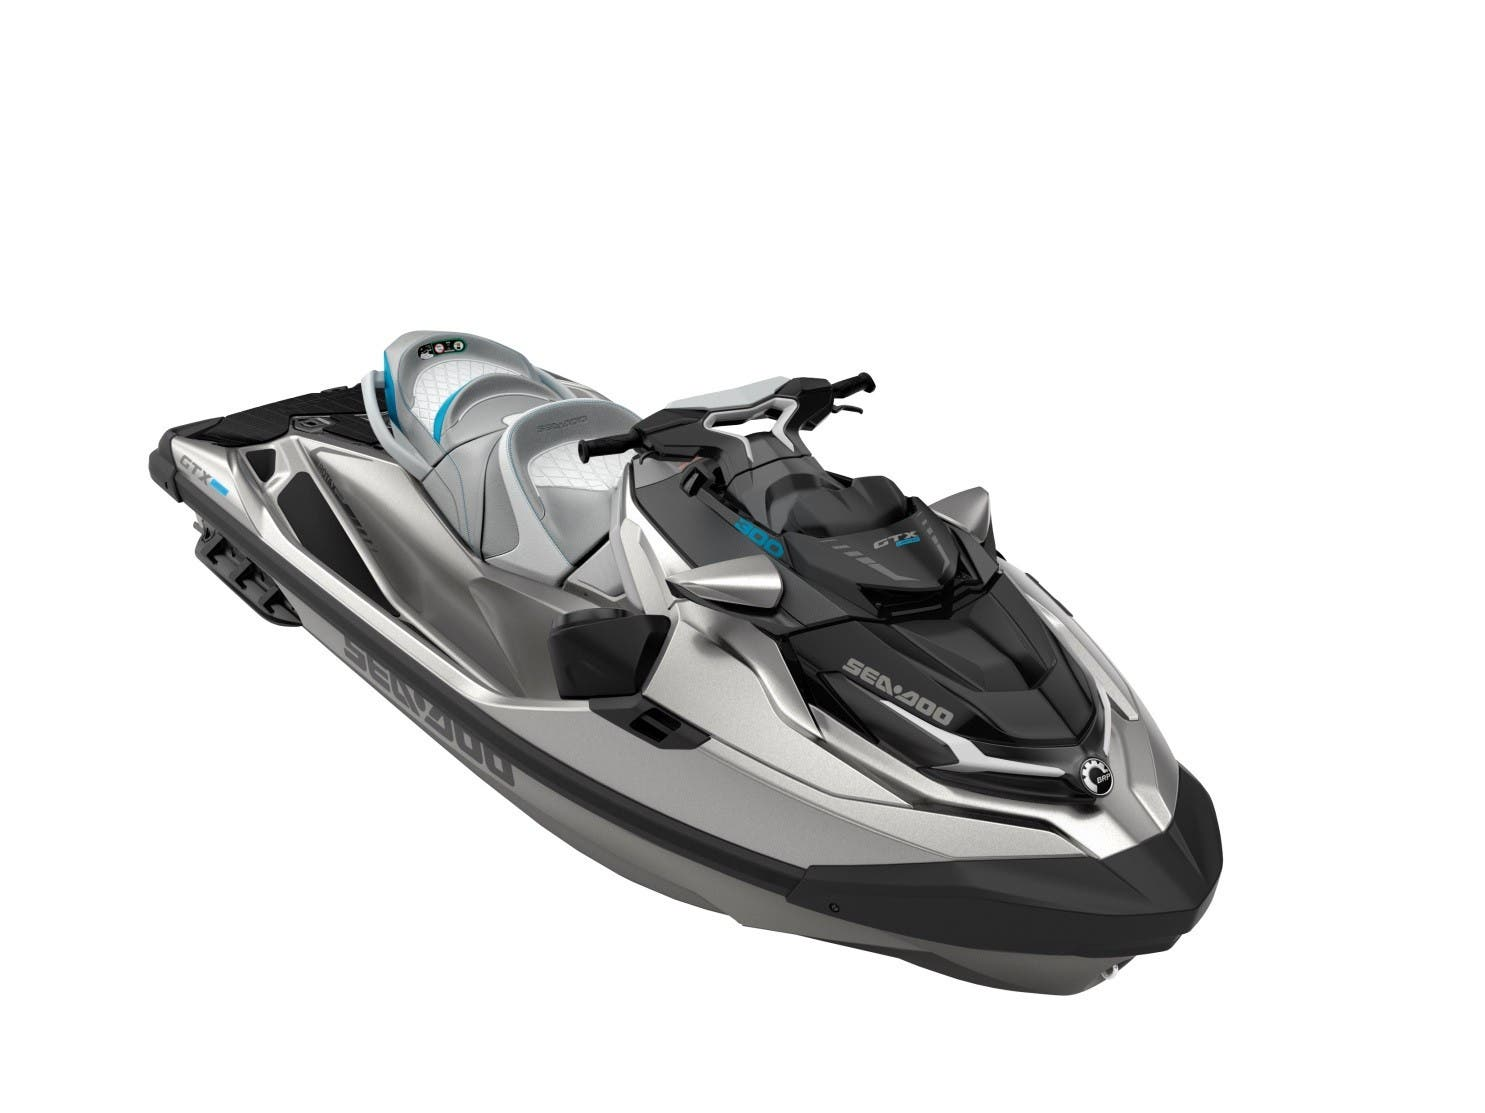 2021 Sea Doo PWC boat for sale, model of the boat is GTX Limited 300 SS iDF & Image # 4 of 5